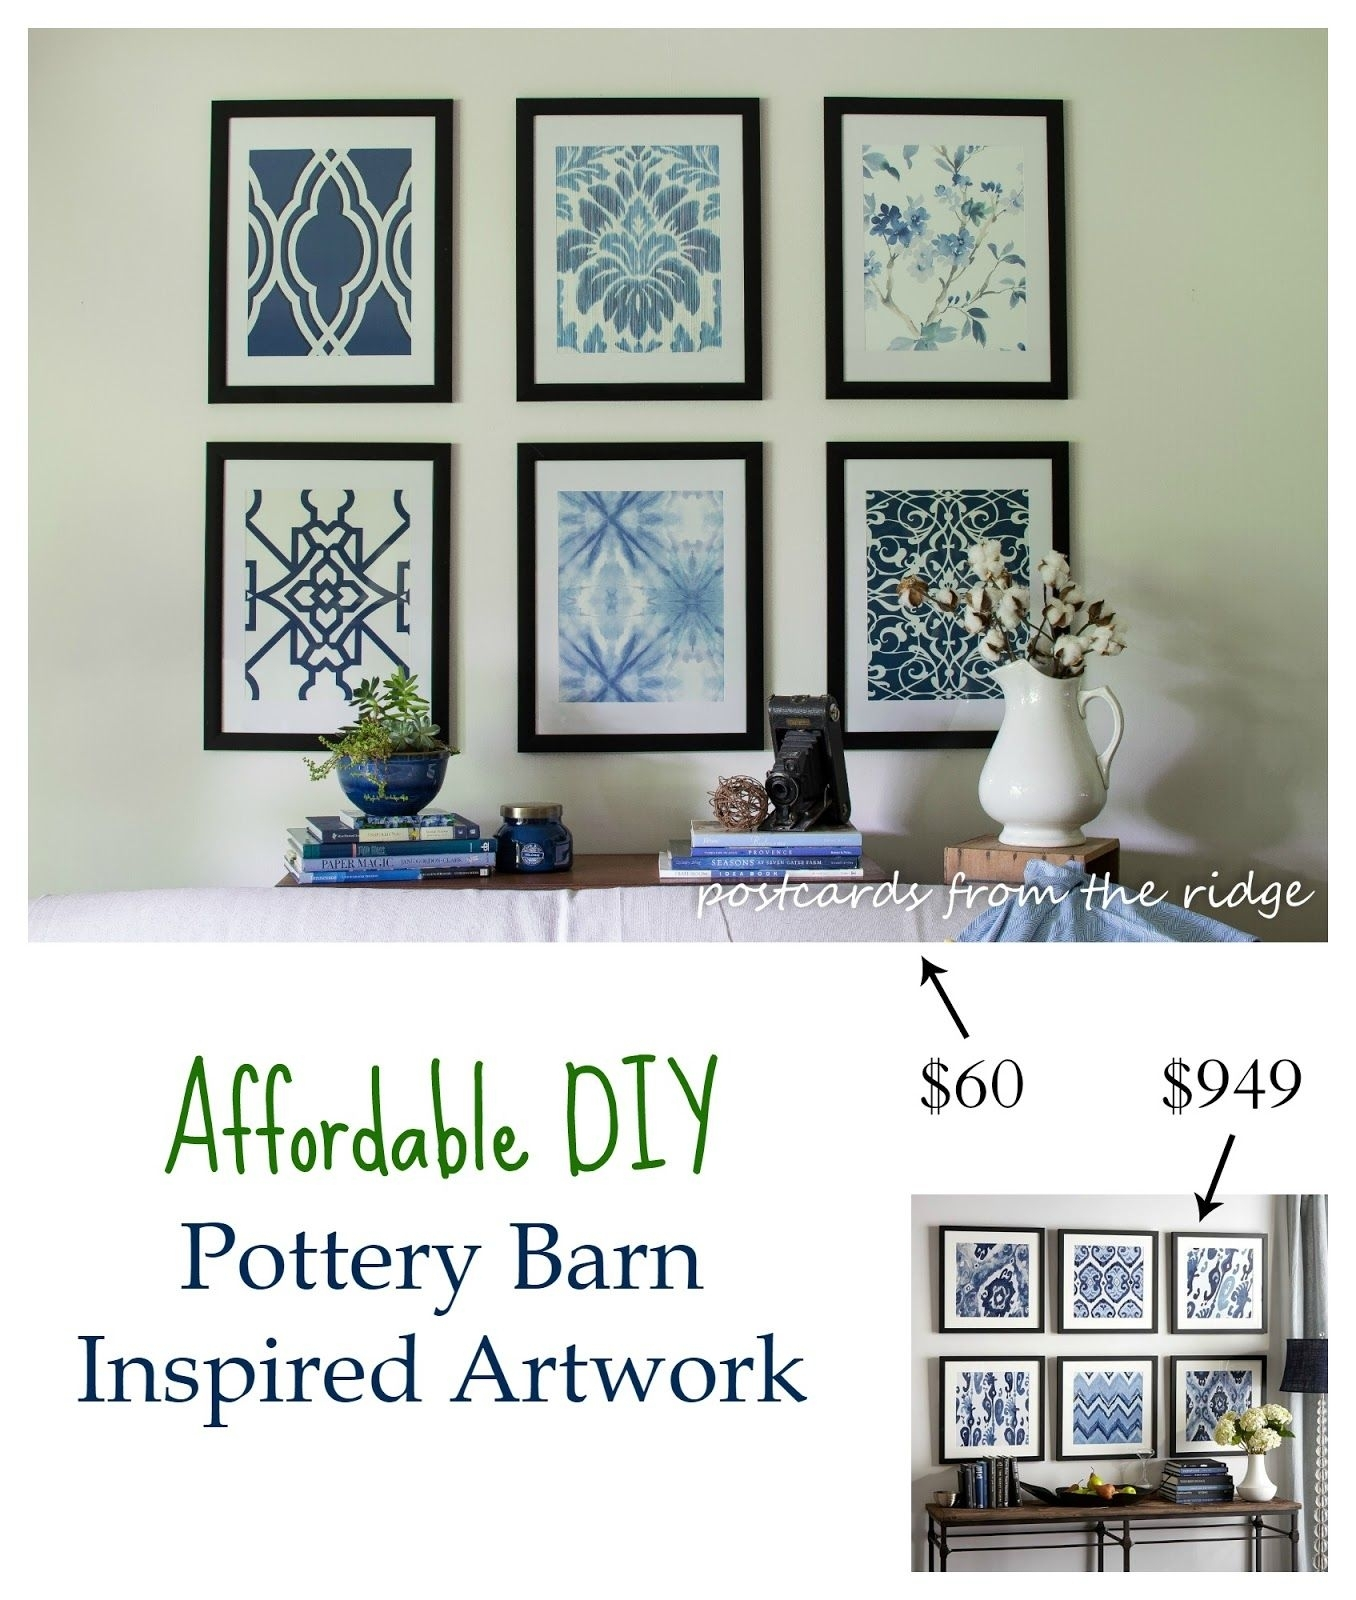 Affordable Diy Artwork Inspiredpottery Barn ~ Rock Your With Latest Affordable Framed Art Prints (View 5 of 15)